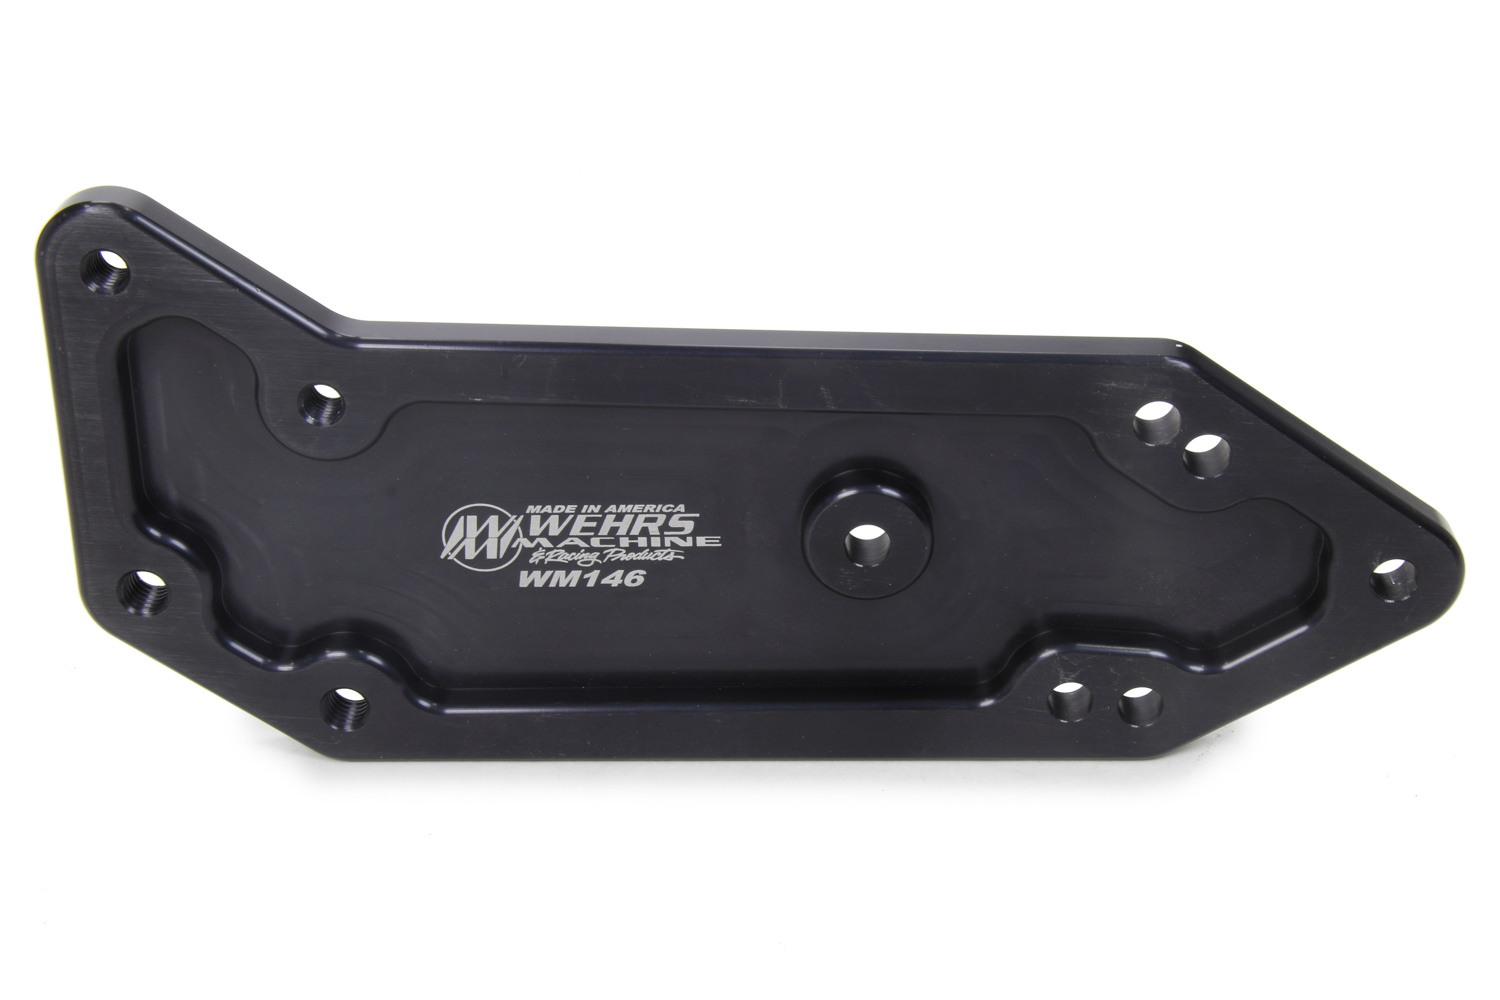 Wehrs Machine WM146 Shifter Set Back Mount, 4 to 6 in Set Back, Aluminum, Black Anodize, T10 Transmission, Each